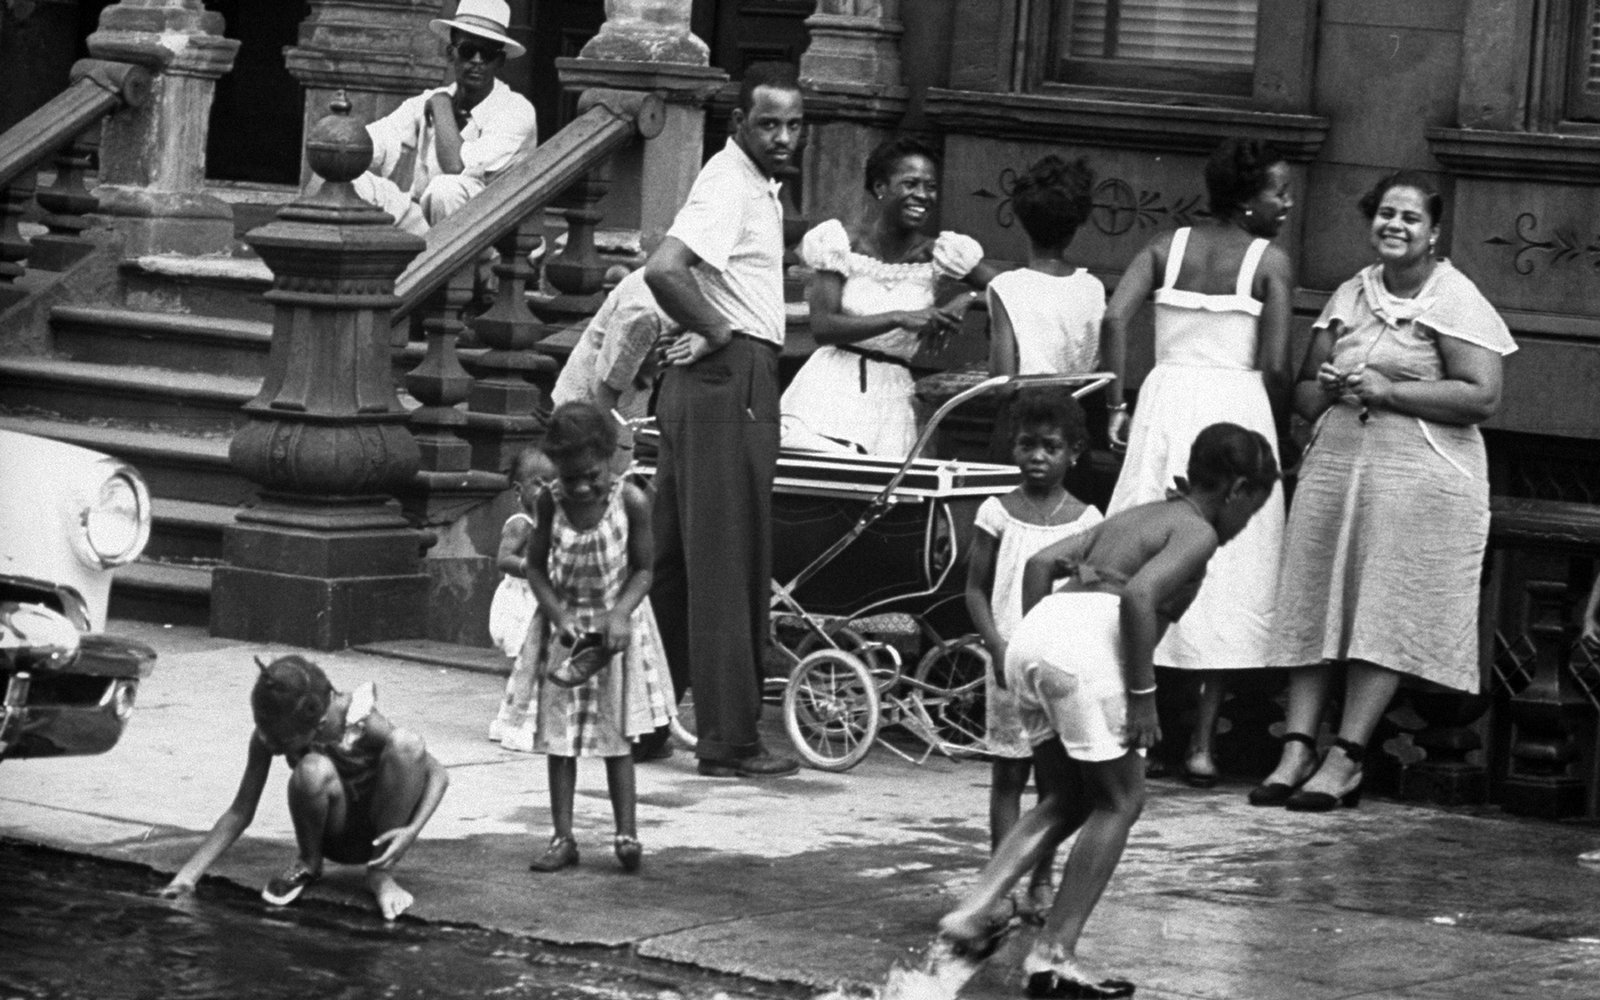 New Yorkers Beat the Heat 1950s-Style